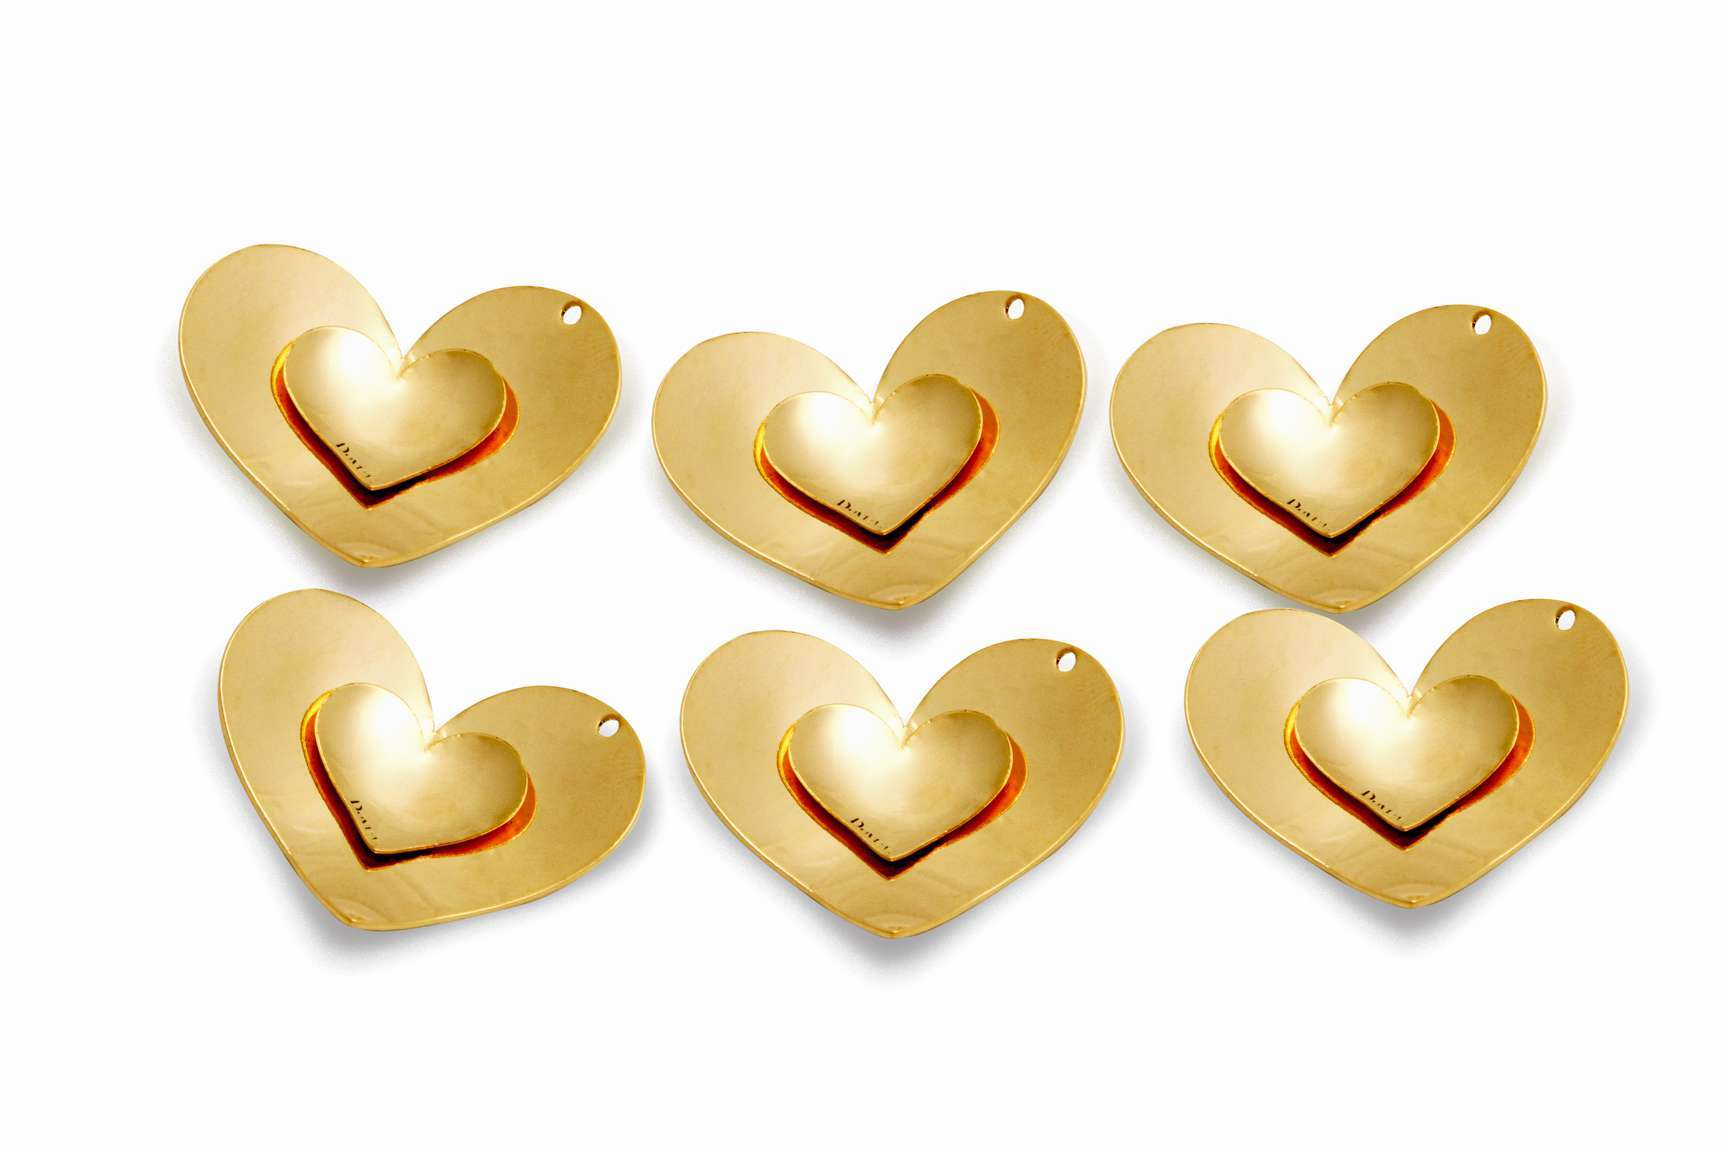 Double Heart Pendant - 6 pcs